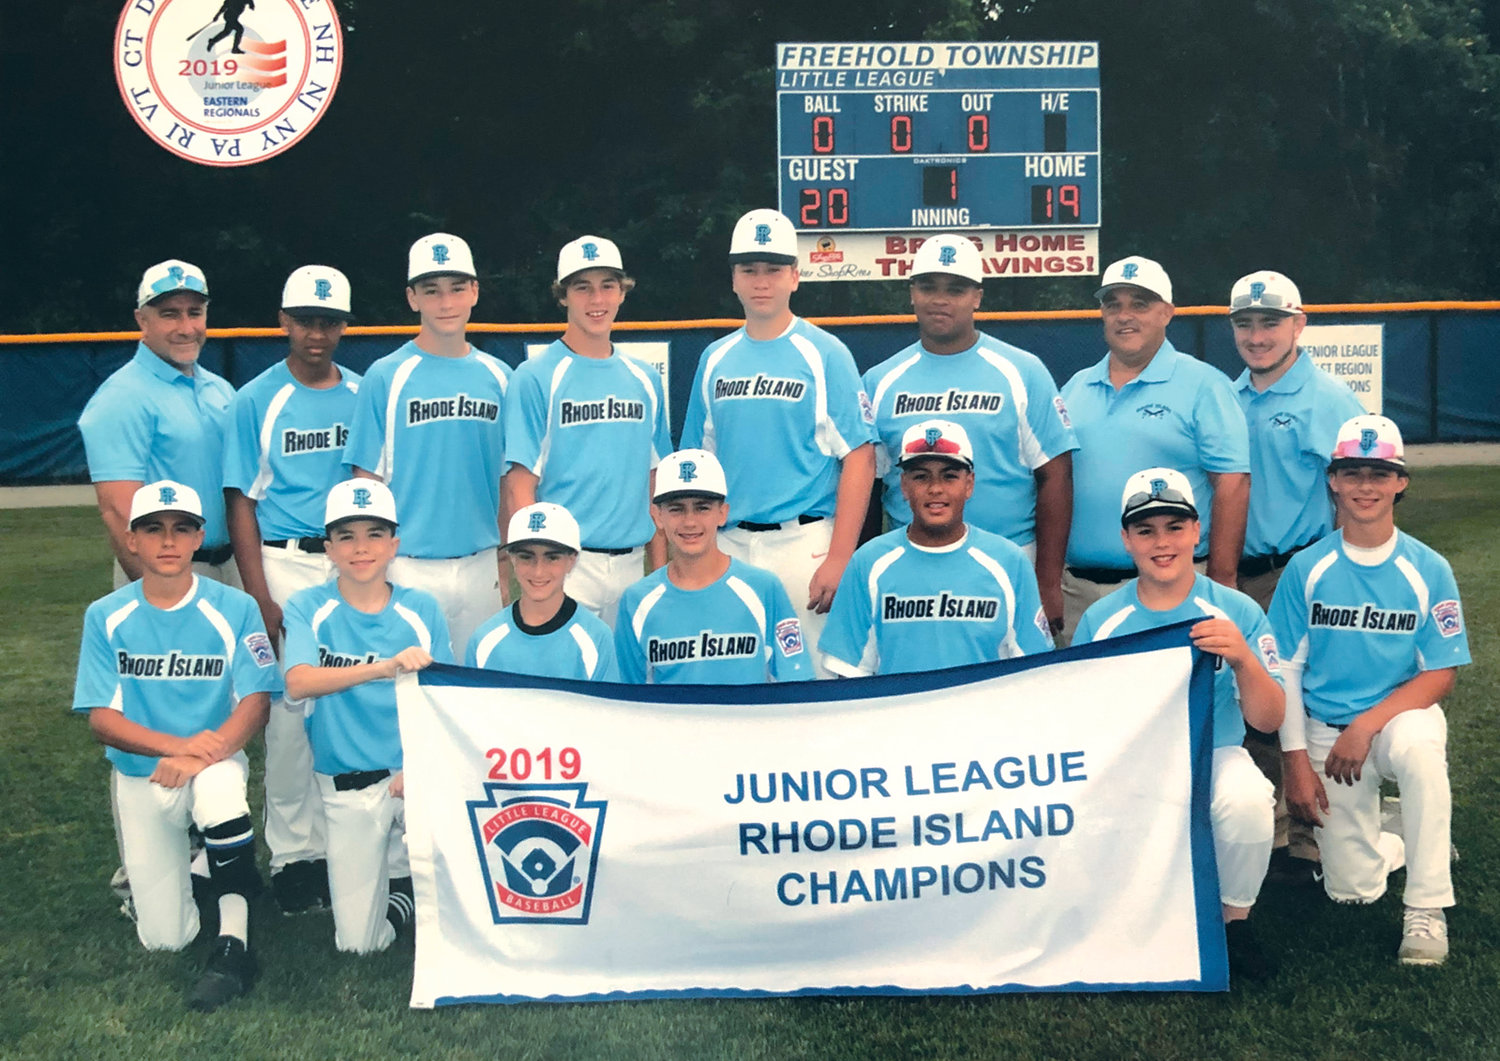 CLASSY CLUB: This is the Johnston Little League's Junior Division All-Star team that after sweeping through the District Tournament proved they were the best in Rhode Island by beating all comers in the state tourney then heading to the Eastern Regional Tournament where Manager Gary Rianna's team was toasted for the respect the club showed to opponents and spectators alike.